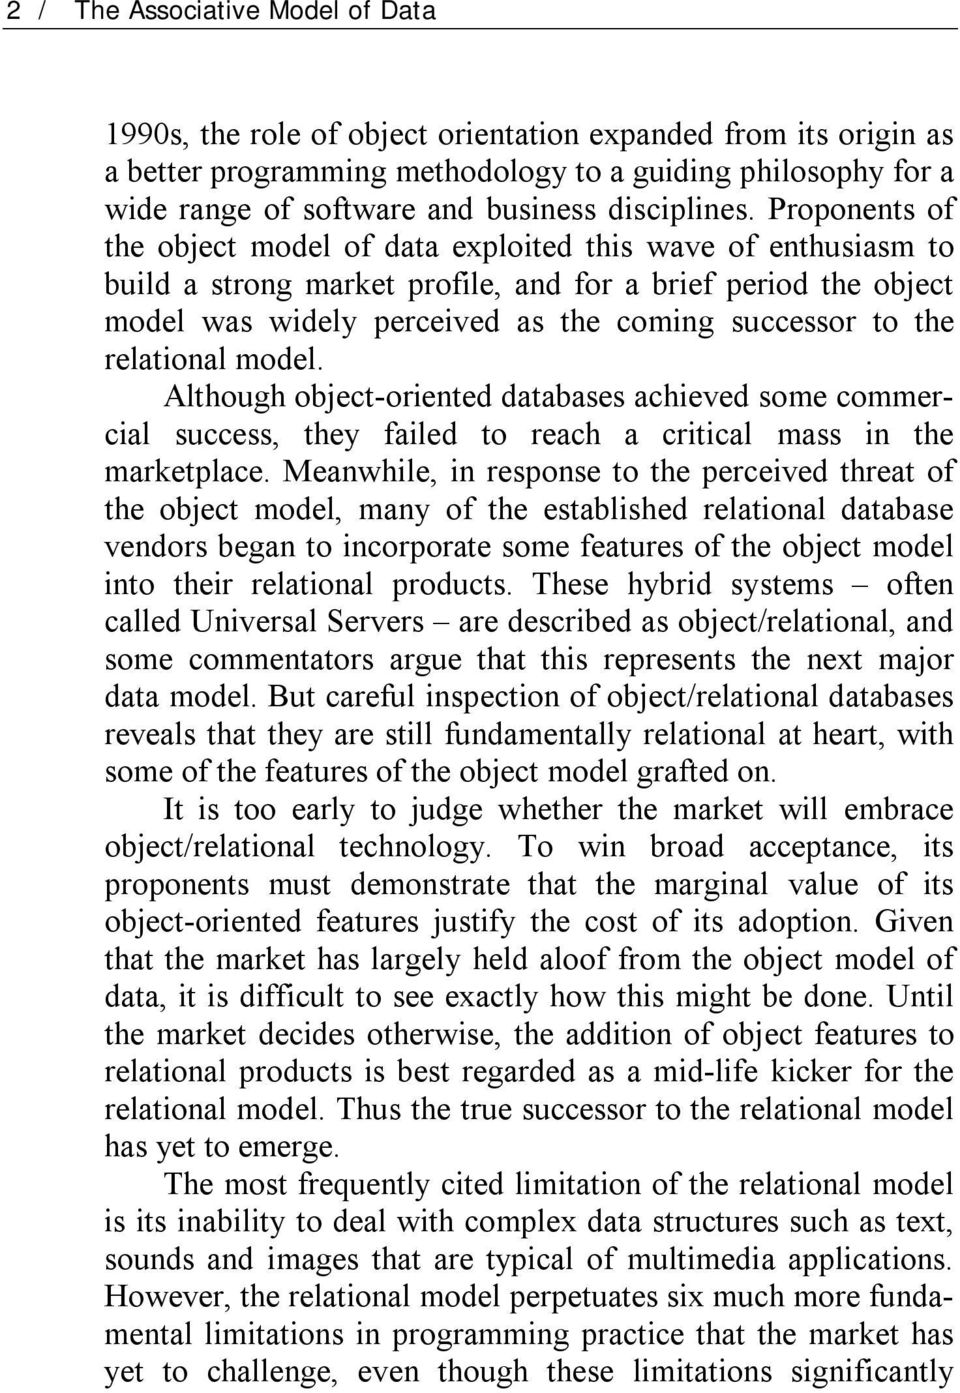 Proponents of the object model of data exploited this wave of enthusiasm to build a strong market profile, and for a brief period the object model was widely perceived as the coming successor to the